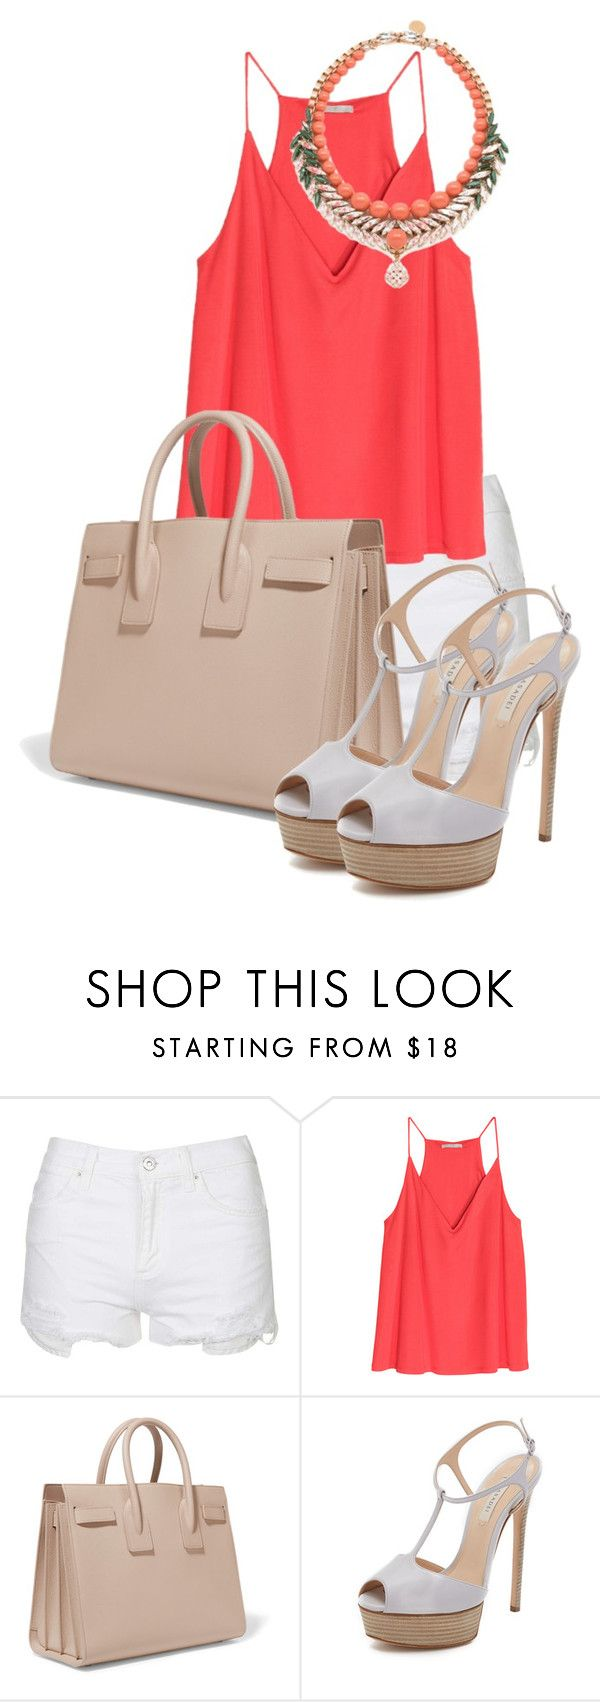 """La tempestad ep 57"" by xrisavladi ❤ liked on Polyvore featuring Topshop, Yves Saint Laurent, Casadei and Ellen Conde"